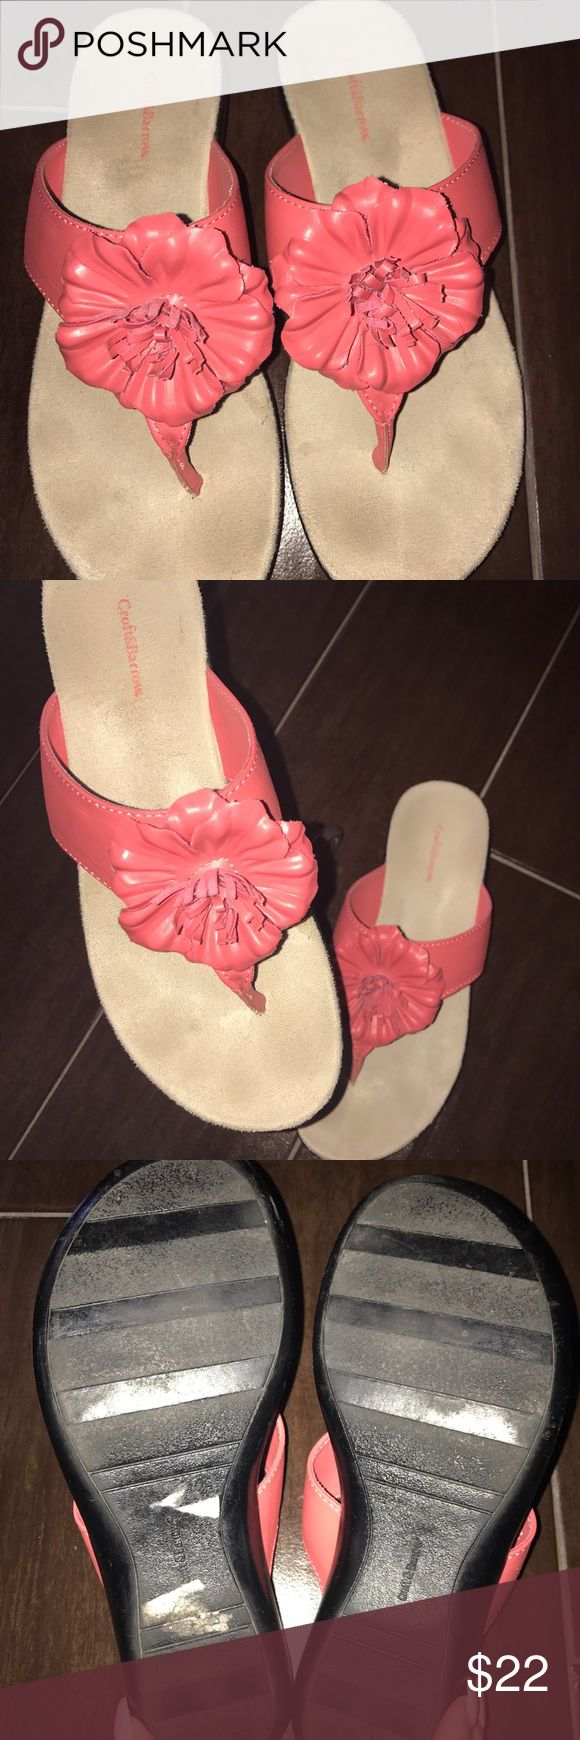 Croft & Barrow Slip in Flower sandal in coral These are super cute and ready for Easter Day by  Croft and Barrow Flower Sandal in coral. Size 6 croft & barrow Shoes Sandals